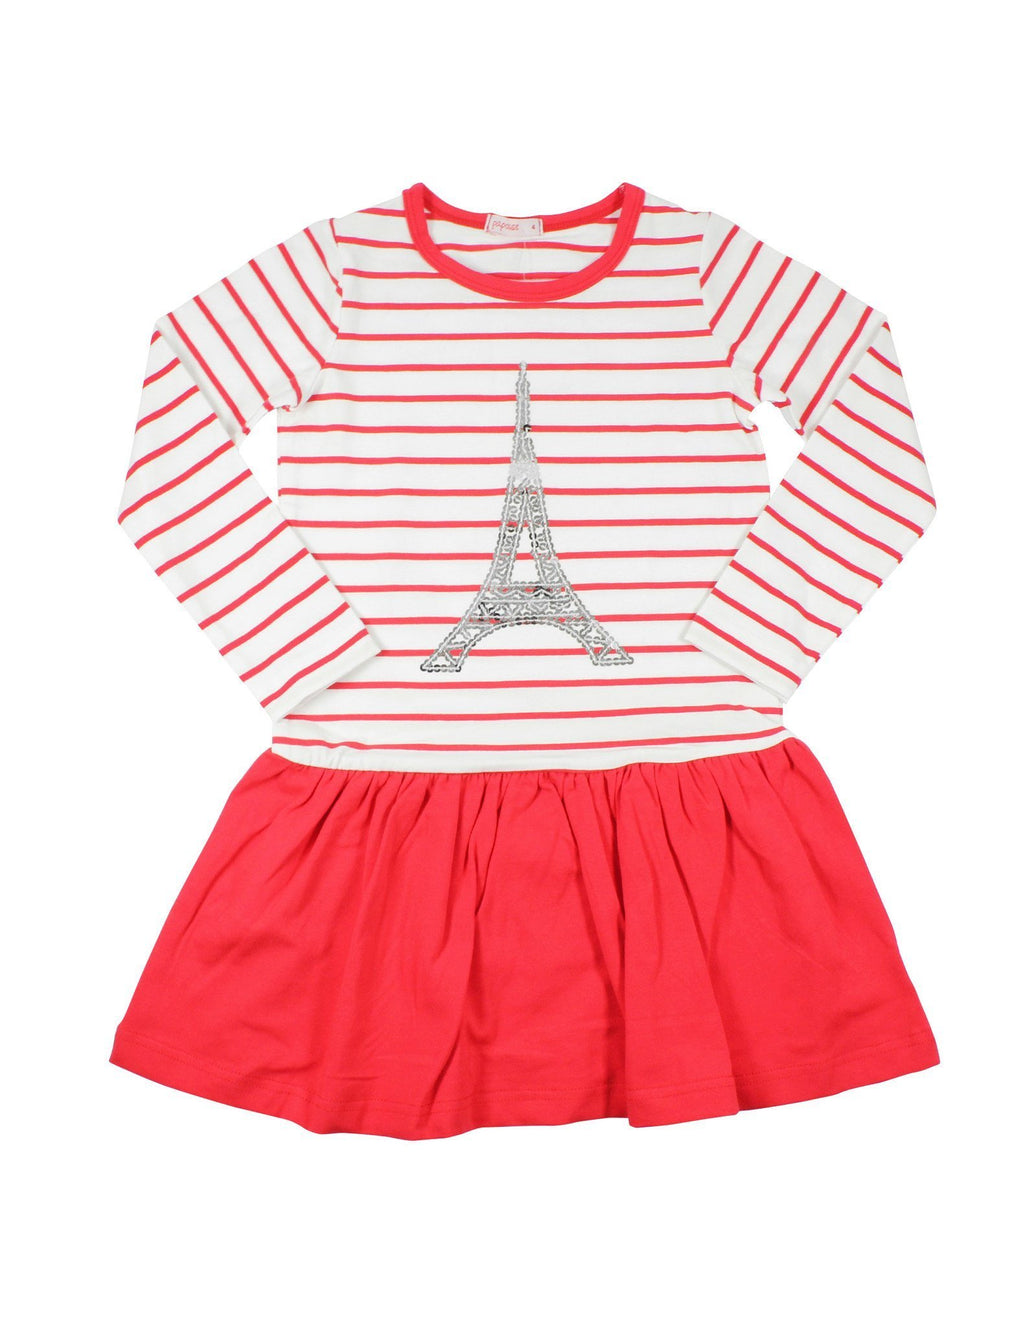 Papoose AW16 Eiffel Tower Red Dress